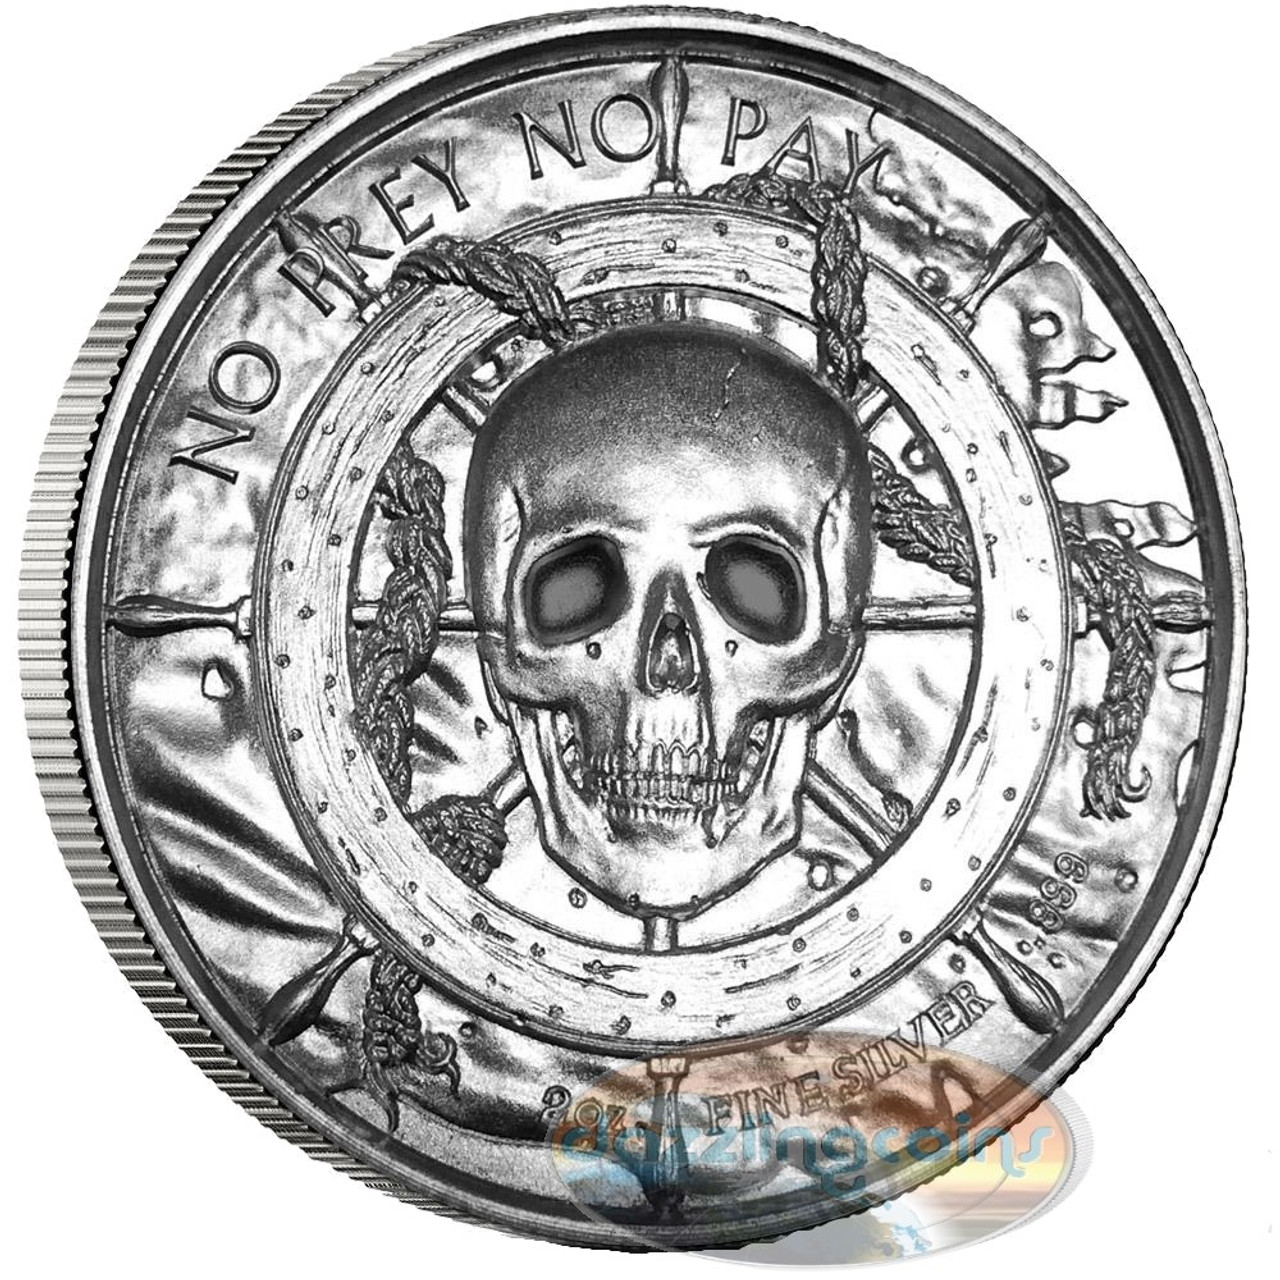 2 Oz Silver Privateer Ultra High Relief Rounds Pirate Coin